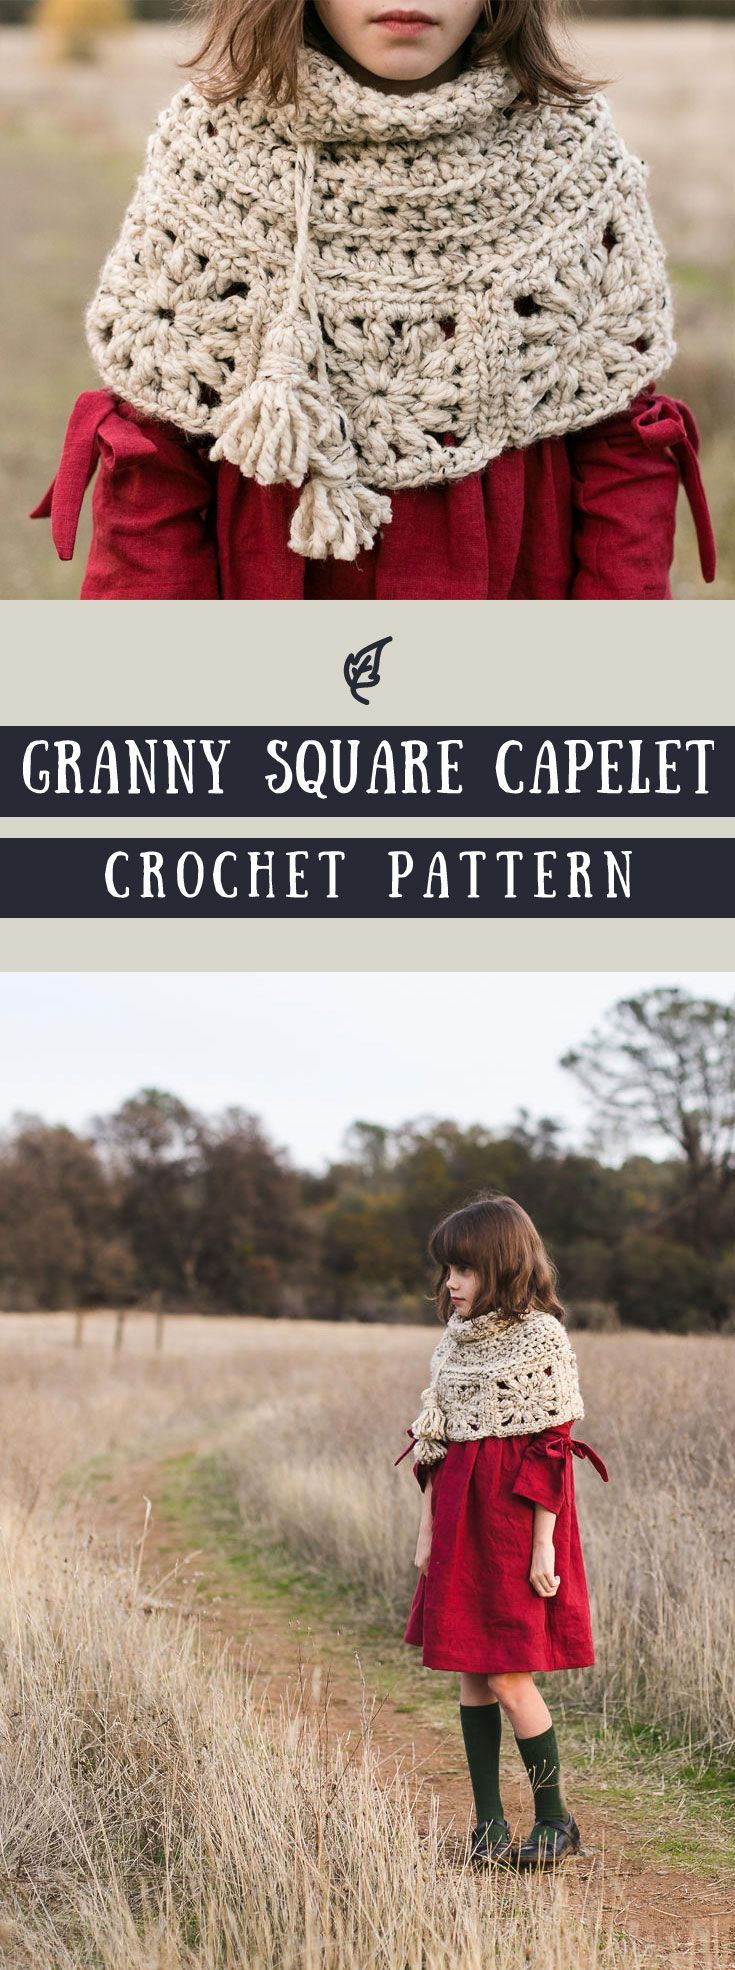 Granny Square Capelet Crochet Pattern | great for both kids and ...